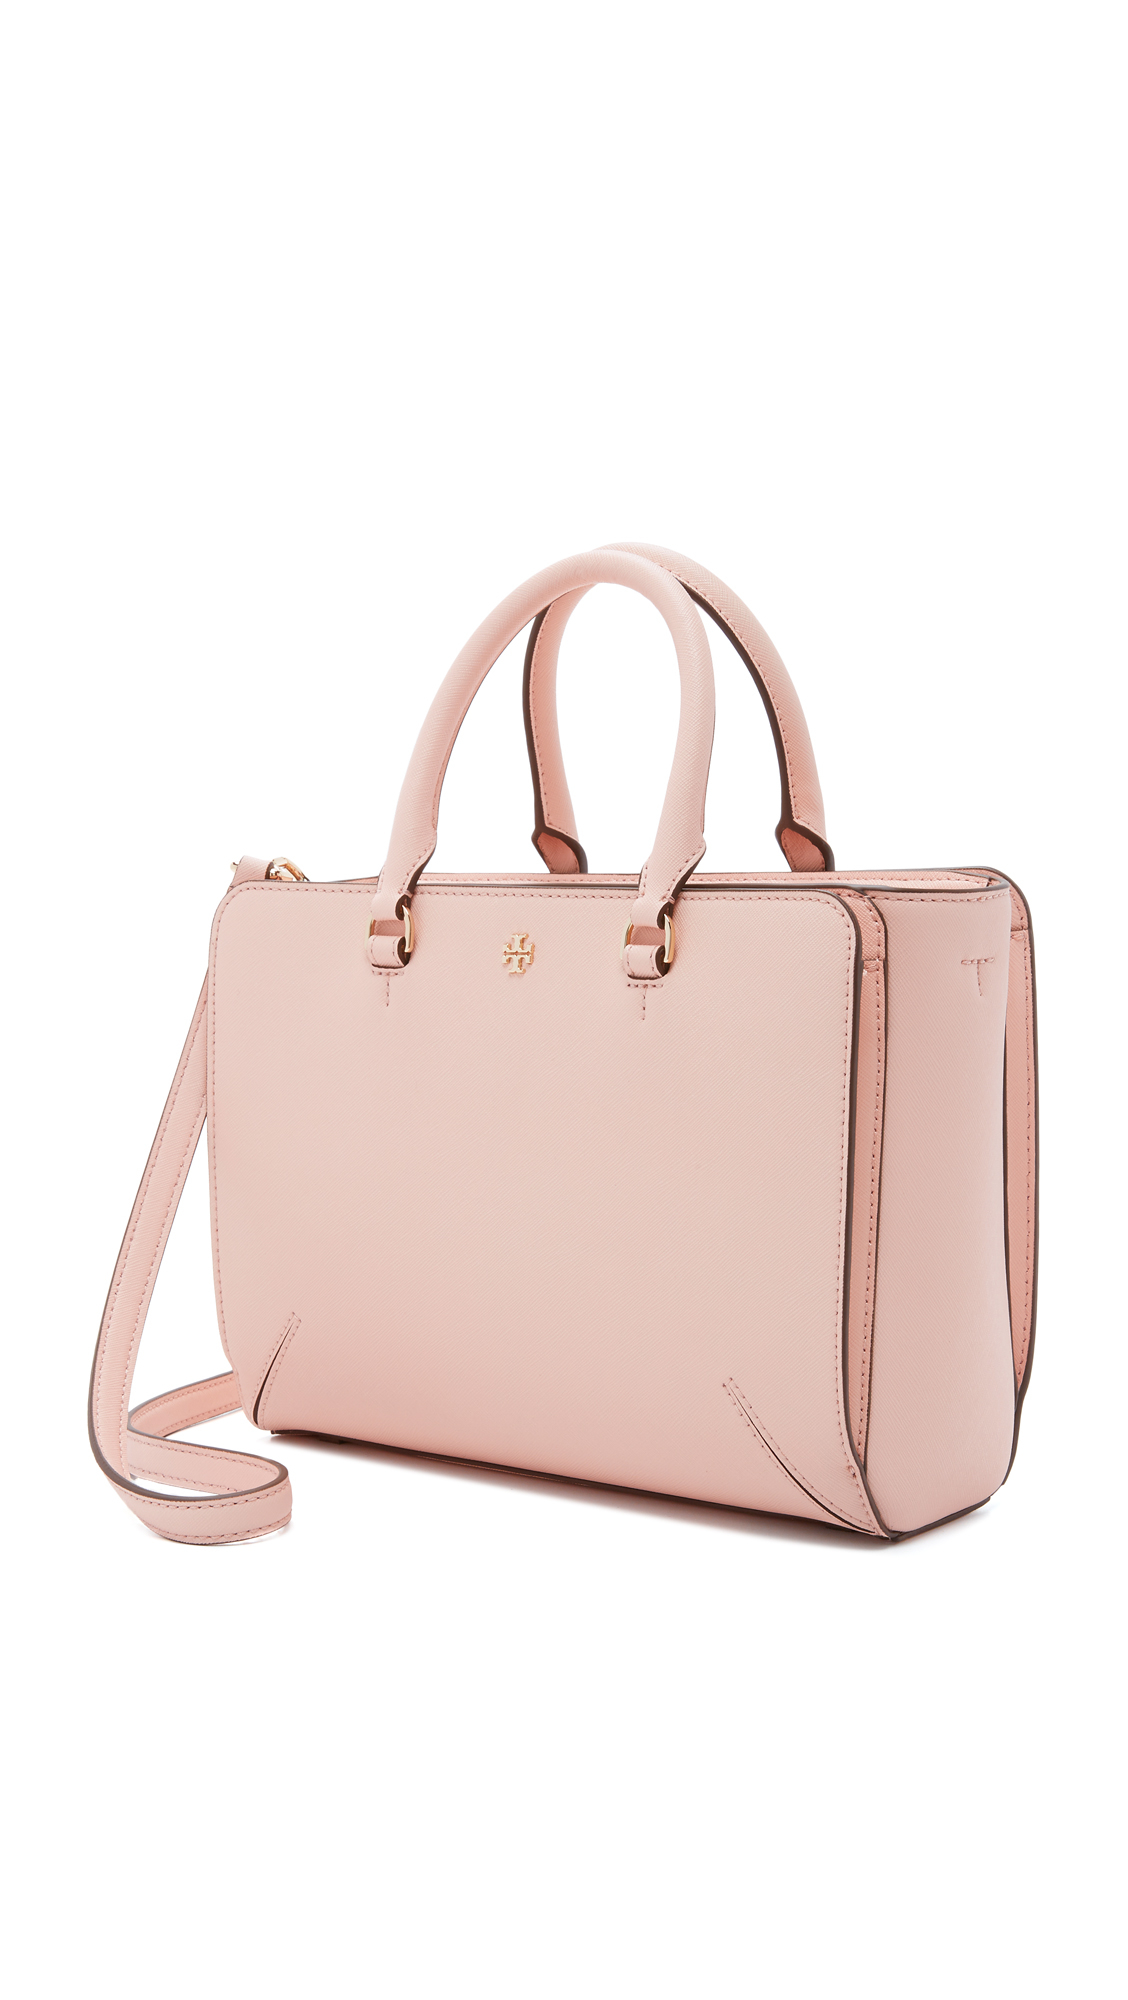 fd6b0ae2c080 Lyst - Tory Burch Robinson Small Zip Tote in Pink